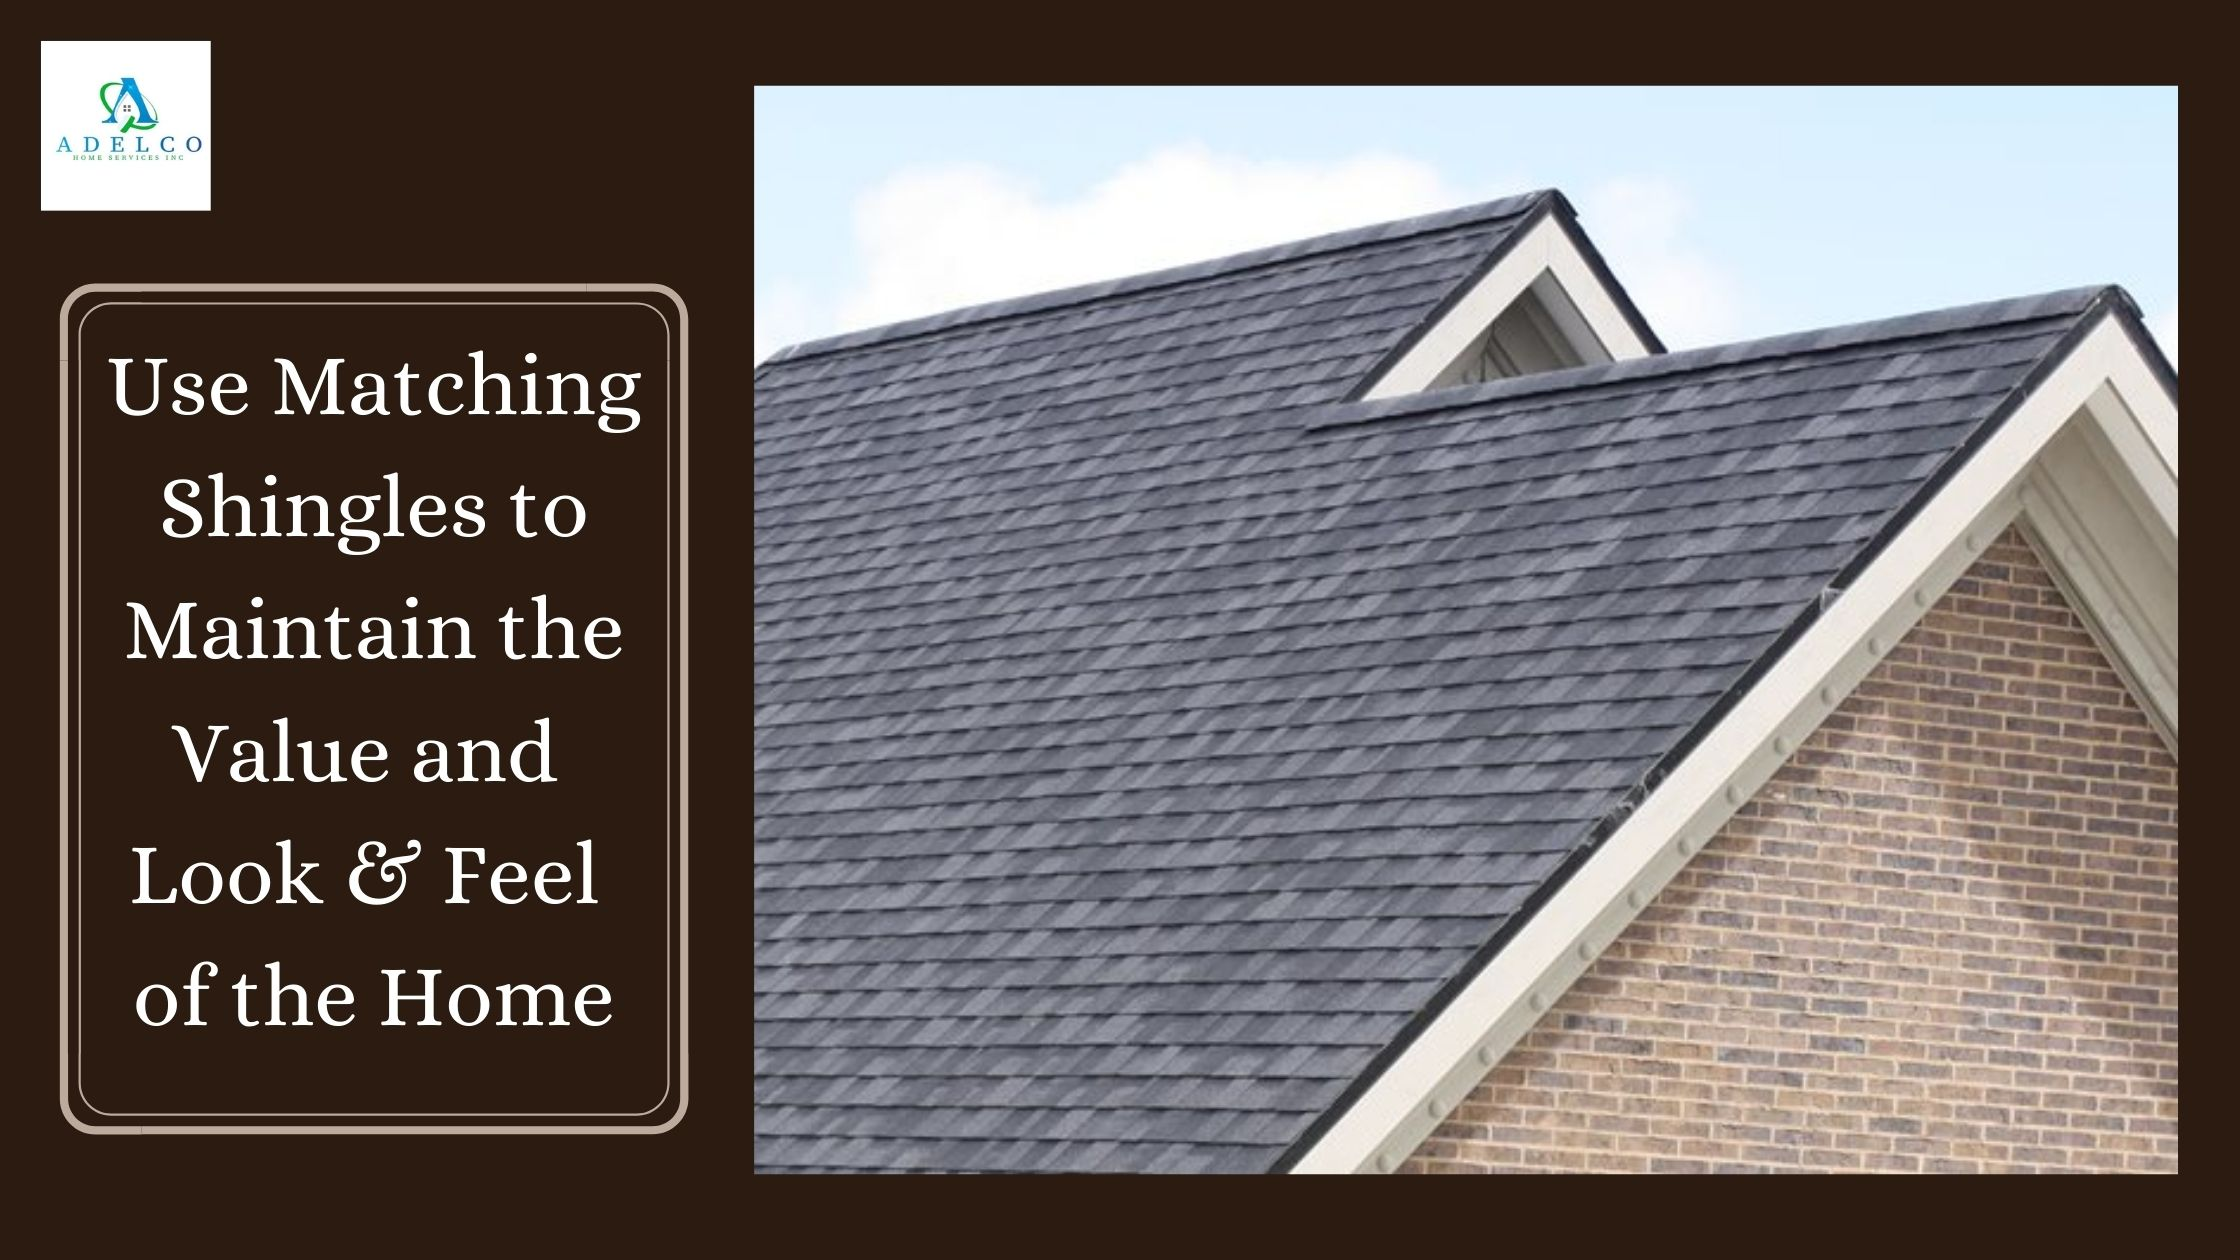 Make Use of Matching Shingles to Maintain the Value of Home